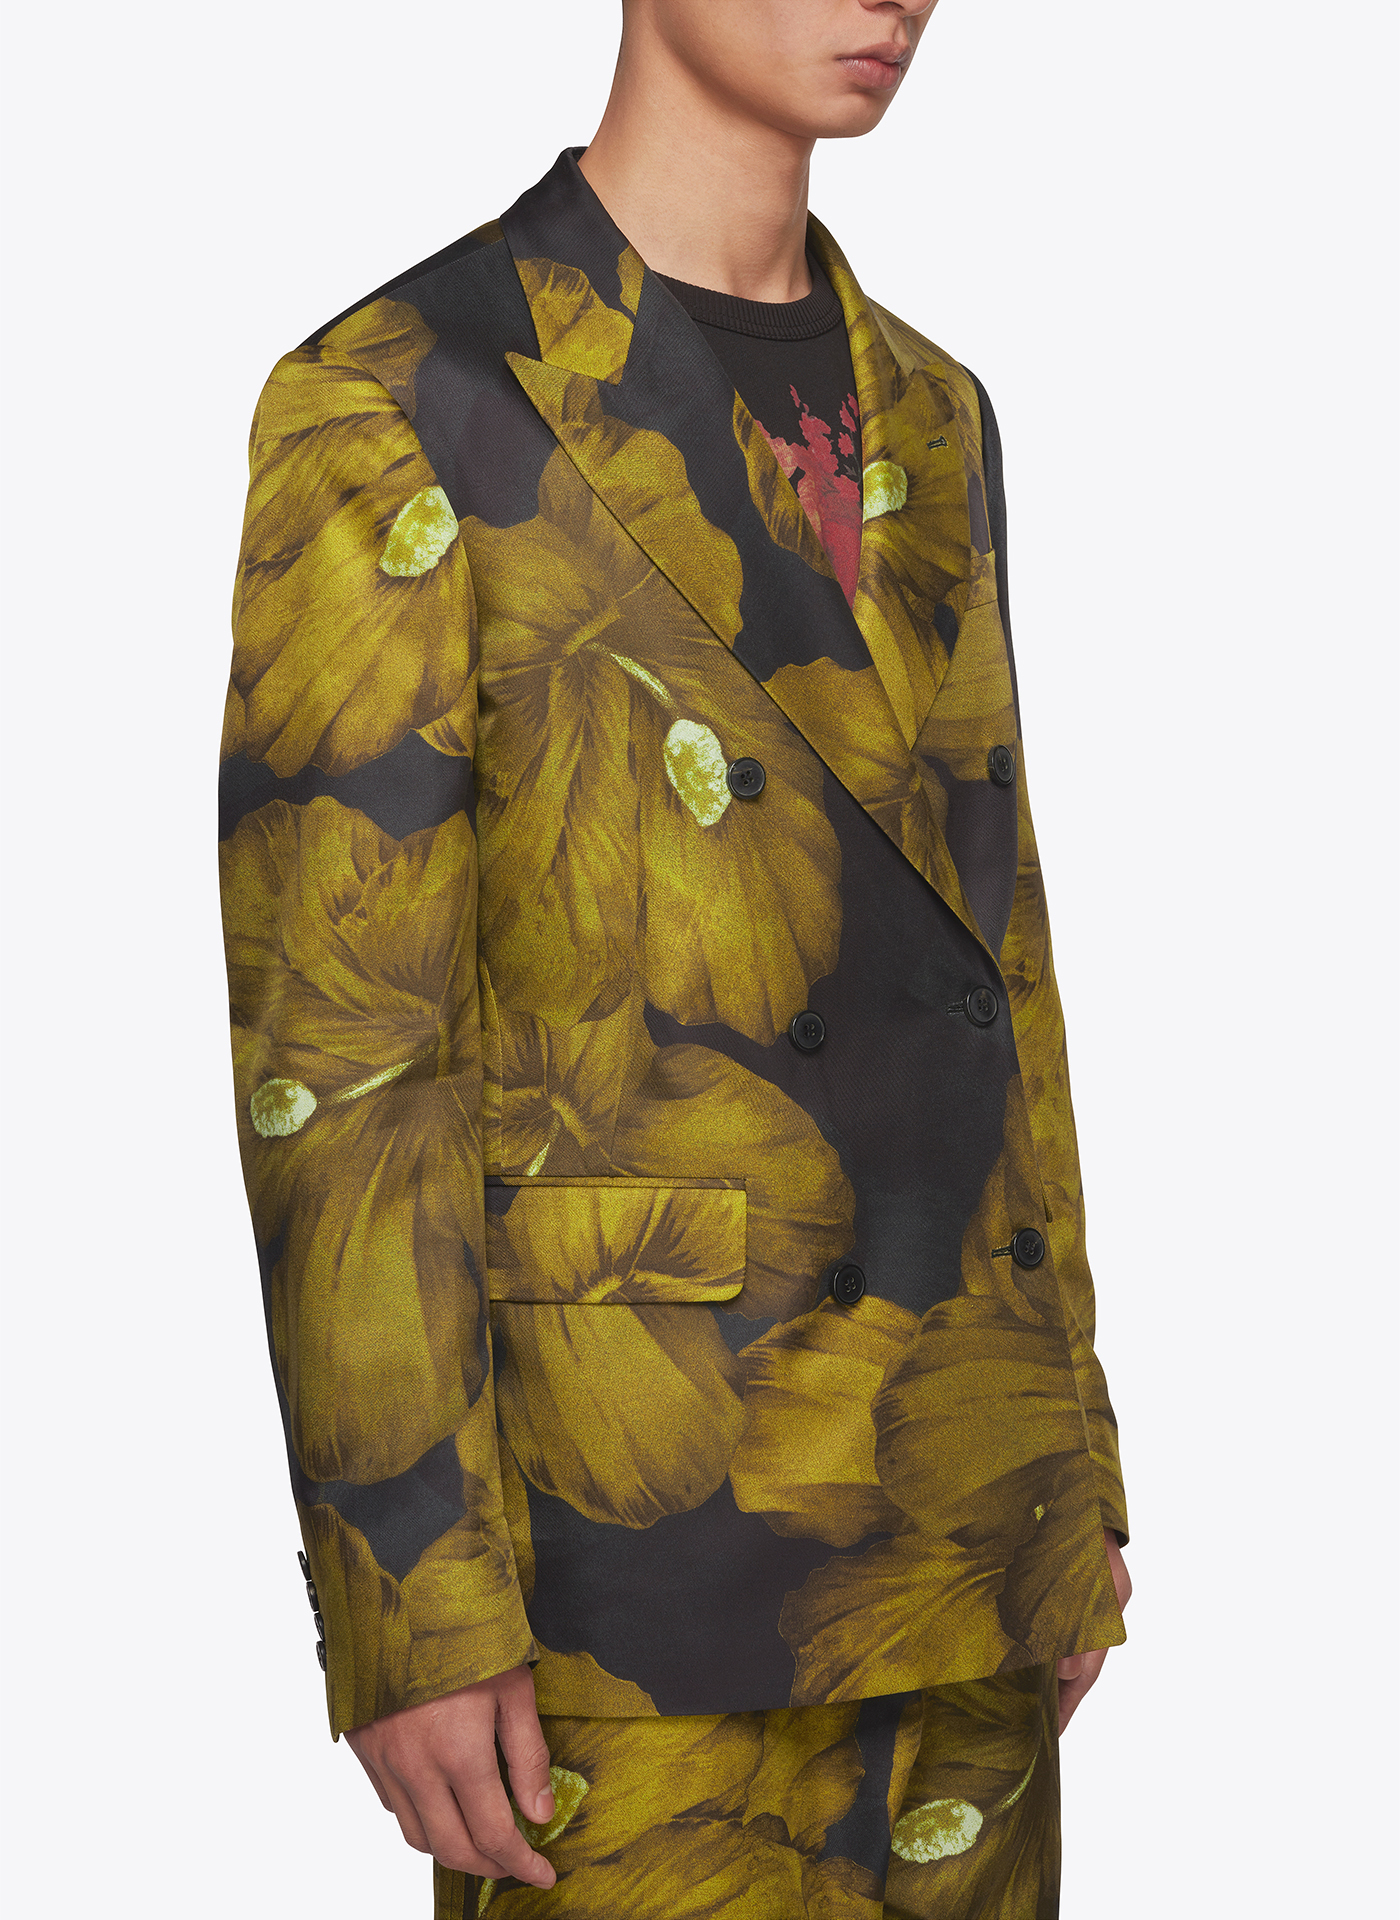 menswear jacket with floral elements